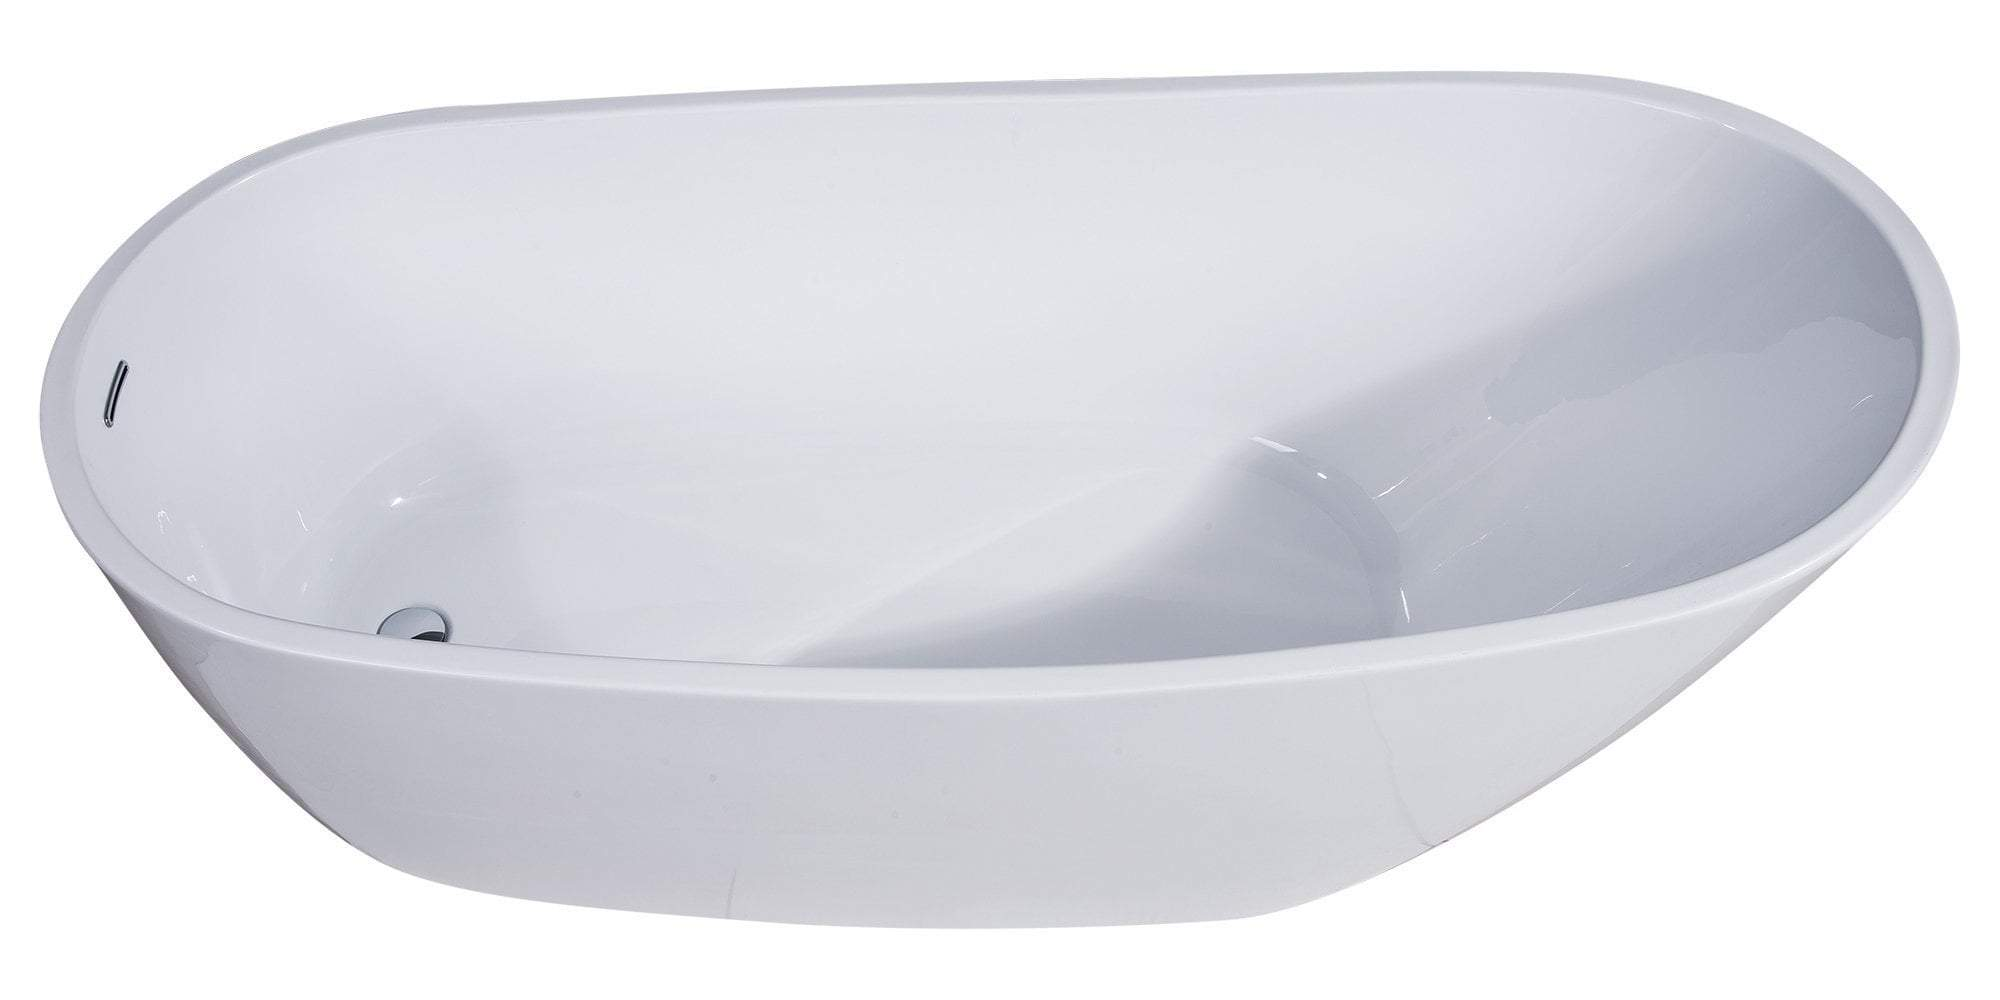 68 inch White Oval Acrylic Free Standing Soaking Bathtub